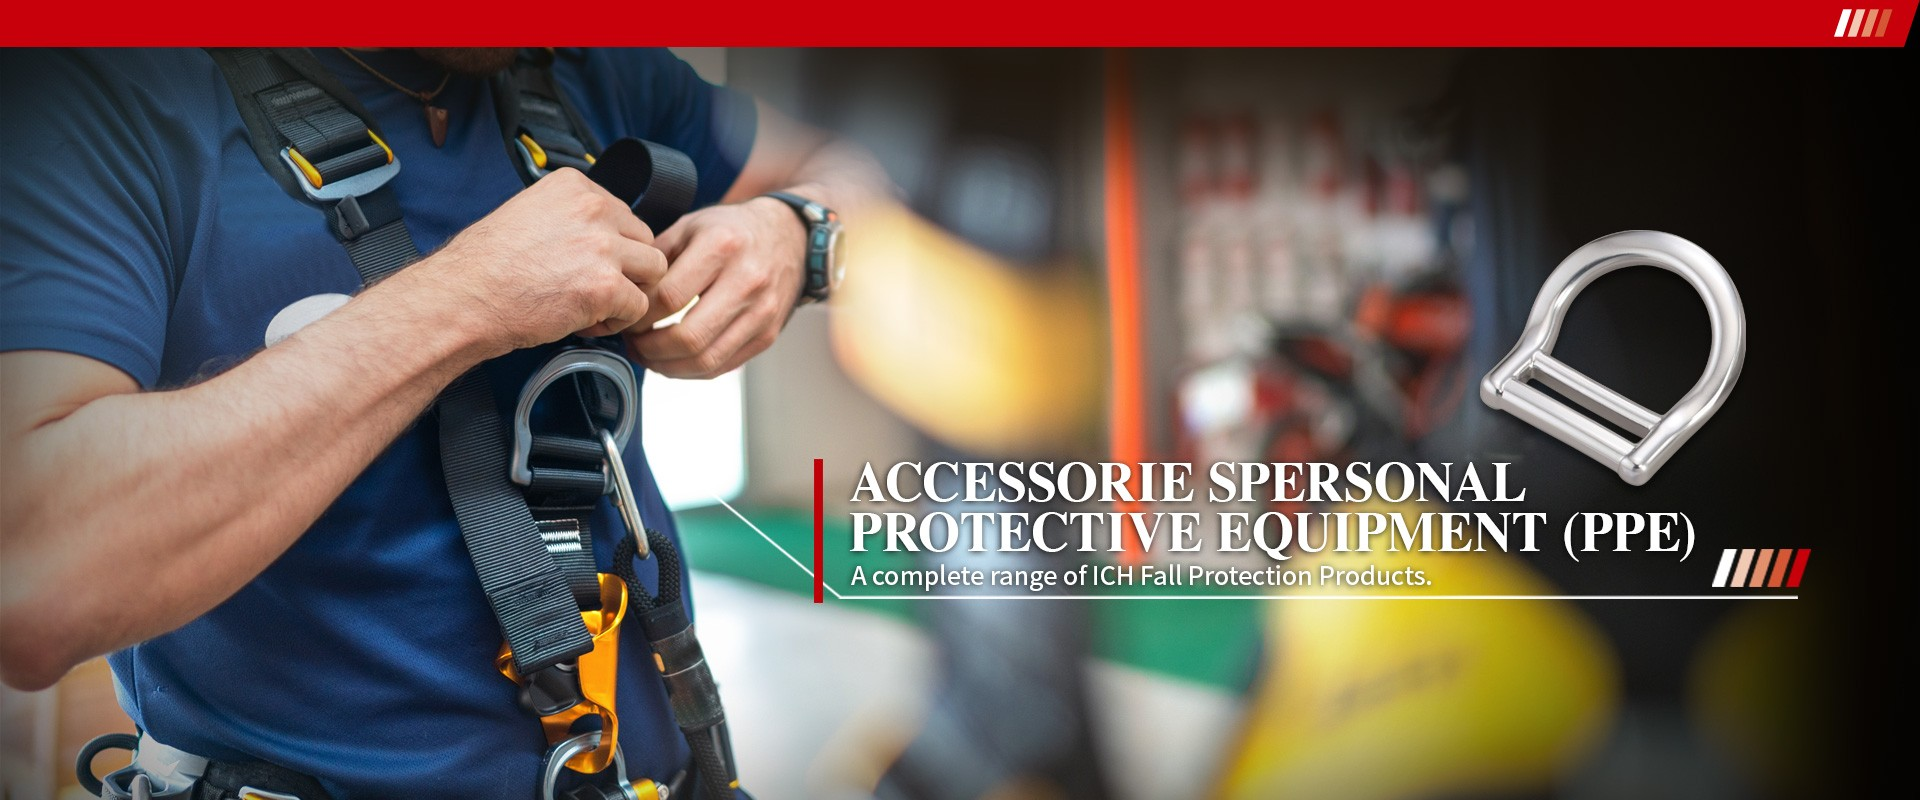 ACCESSORIE SPERSONAL PROTECTIVE EQUIPMENT (PPE)